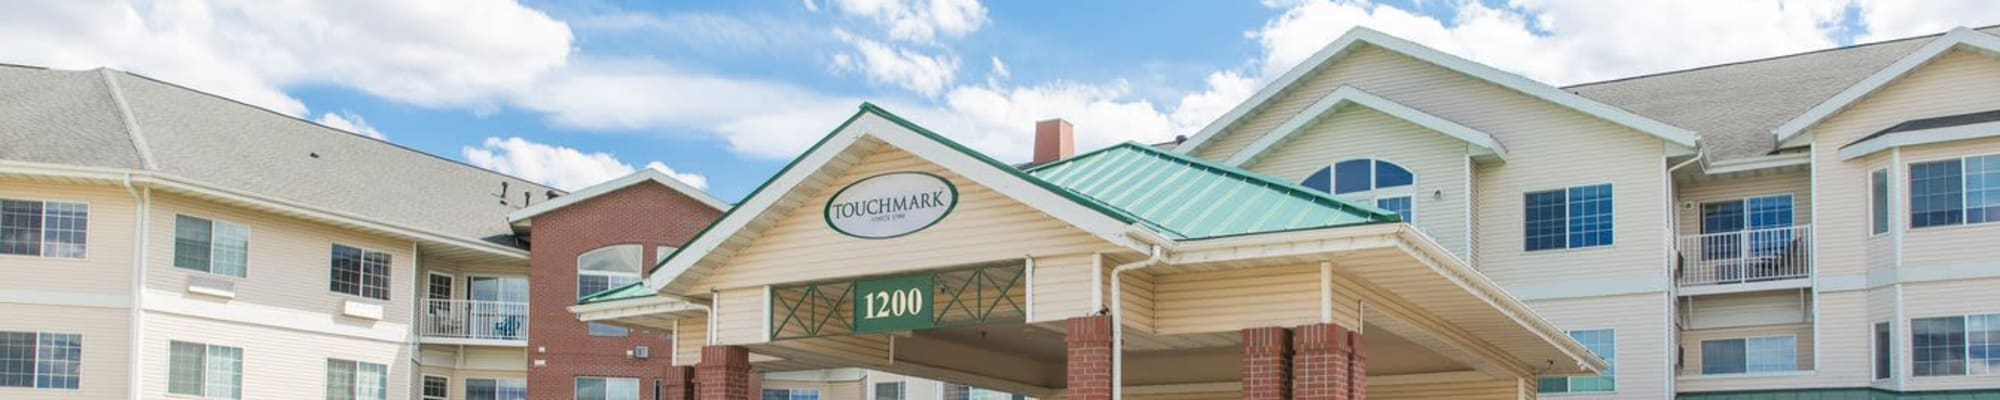 Directions to Touchmark at Harwood Groves in Fargo, North Dakota